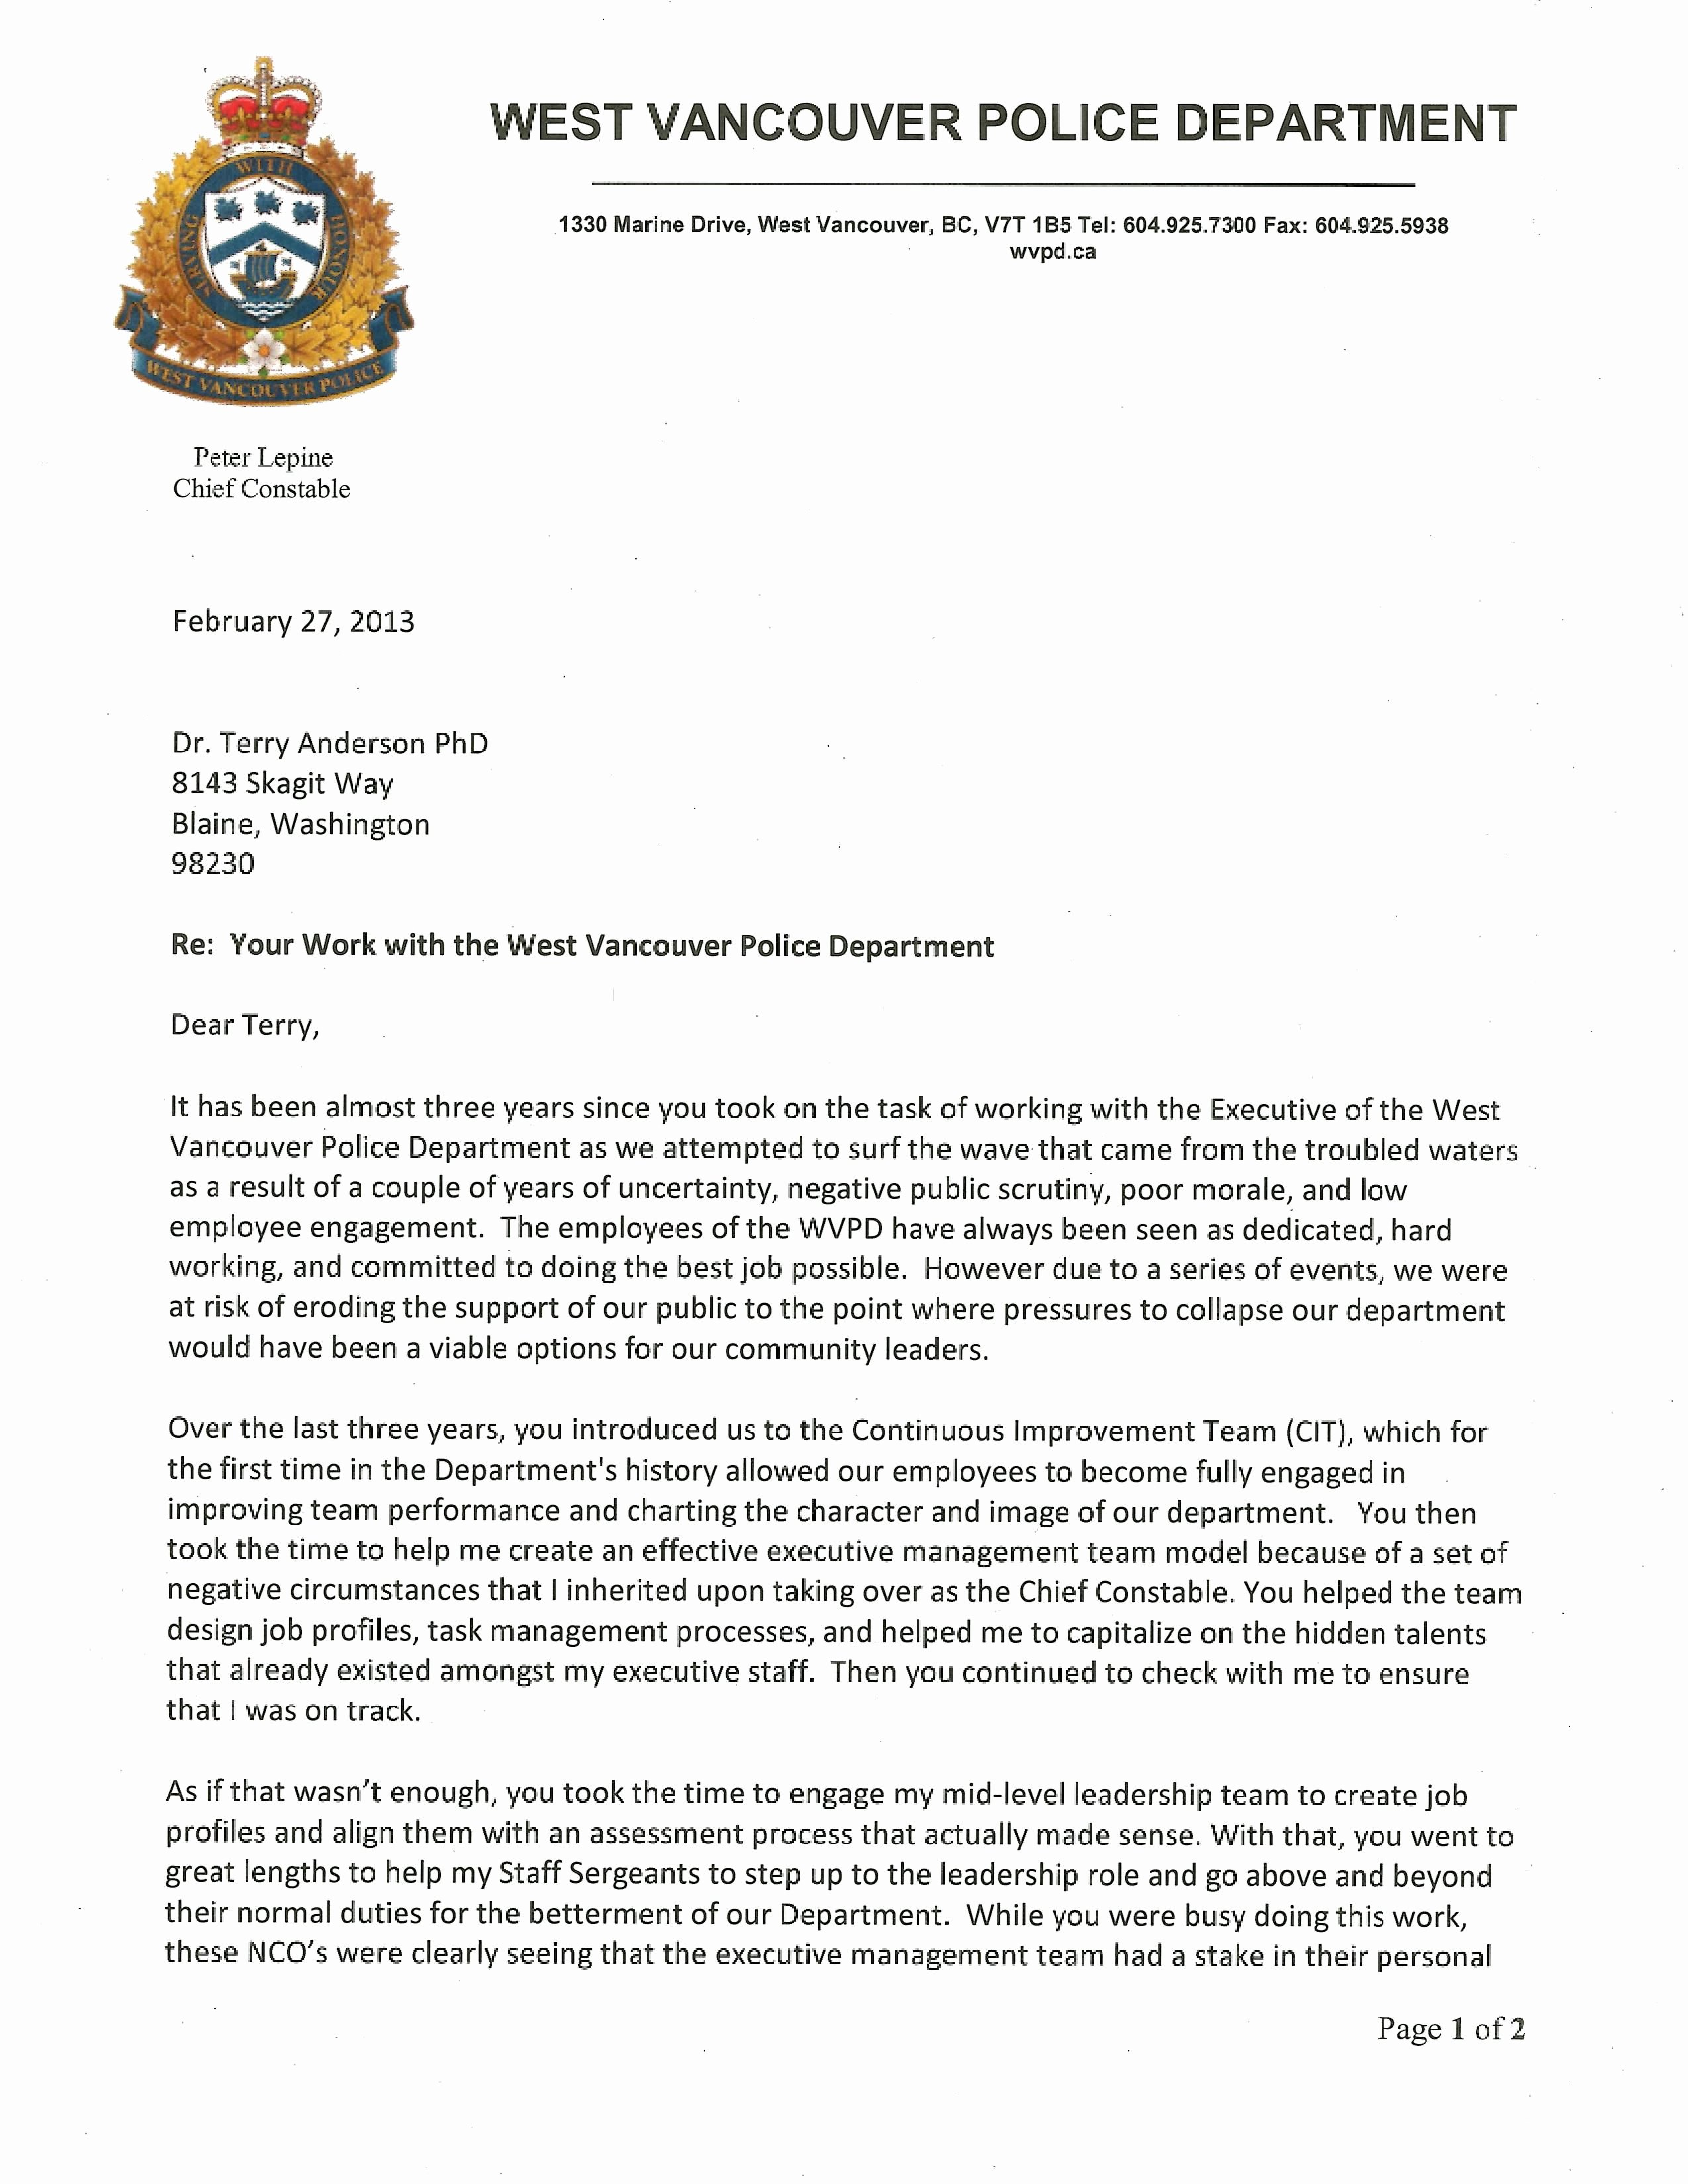 Business Letter Of Recommendation Template Luxury Letters Re Mendation Consulting Coach anderson